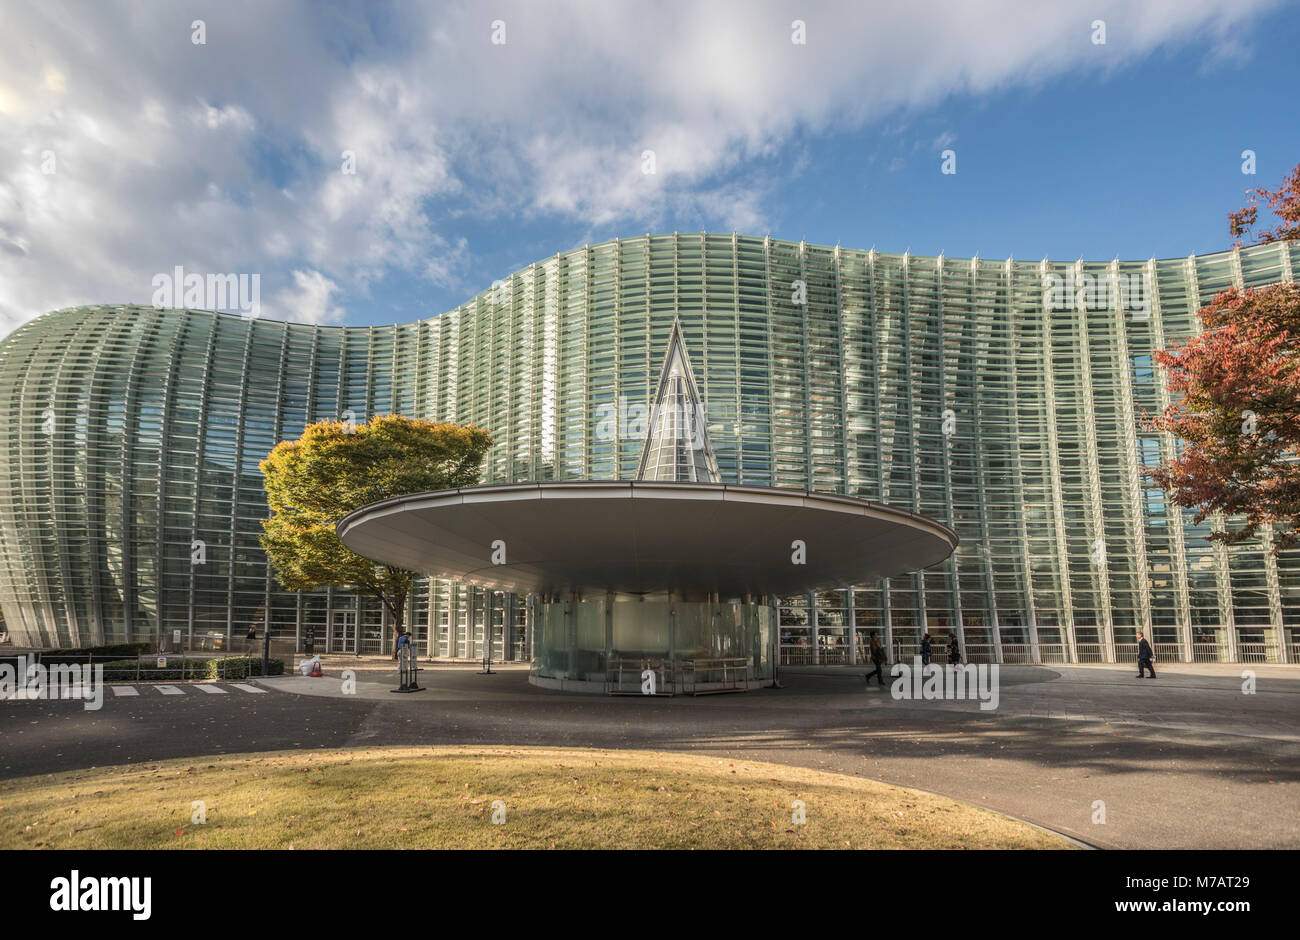 Japan, Tokyo City, National Art Center Bldg. - Stock Image